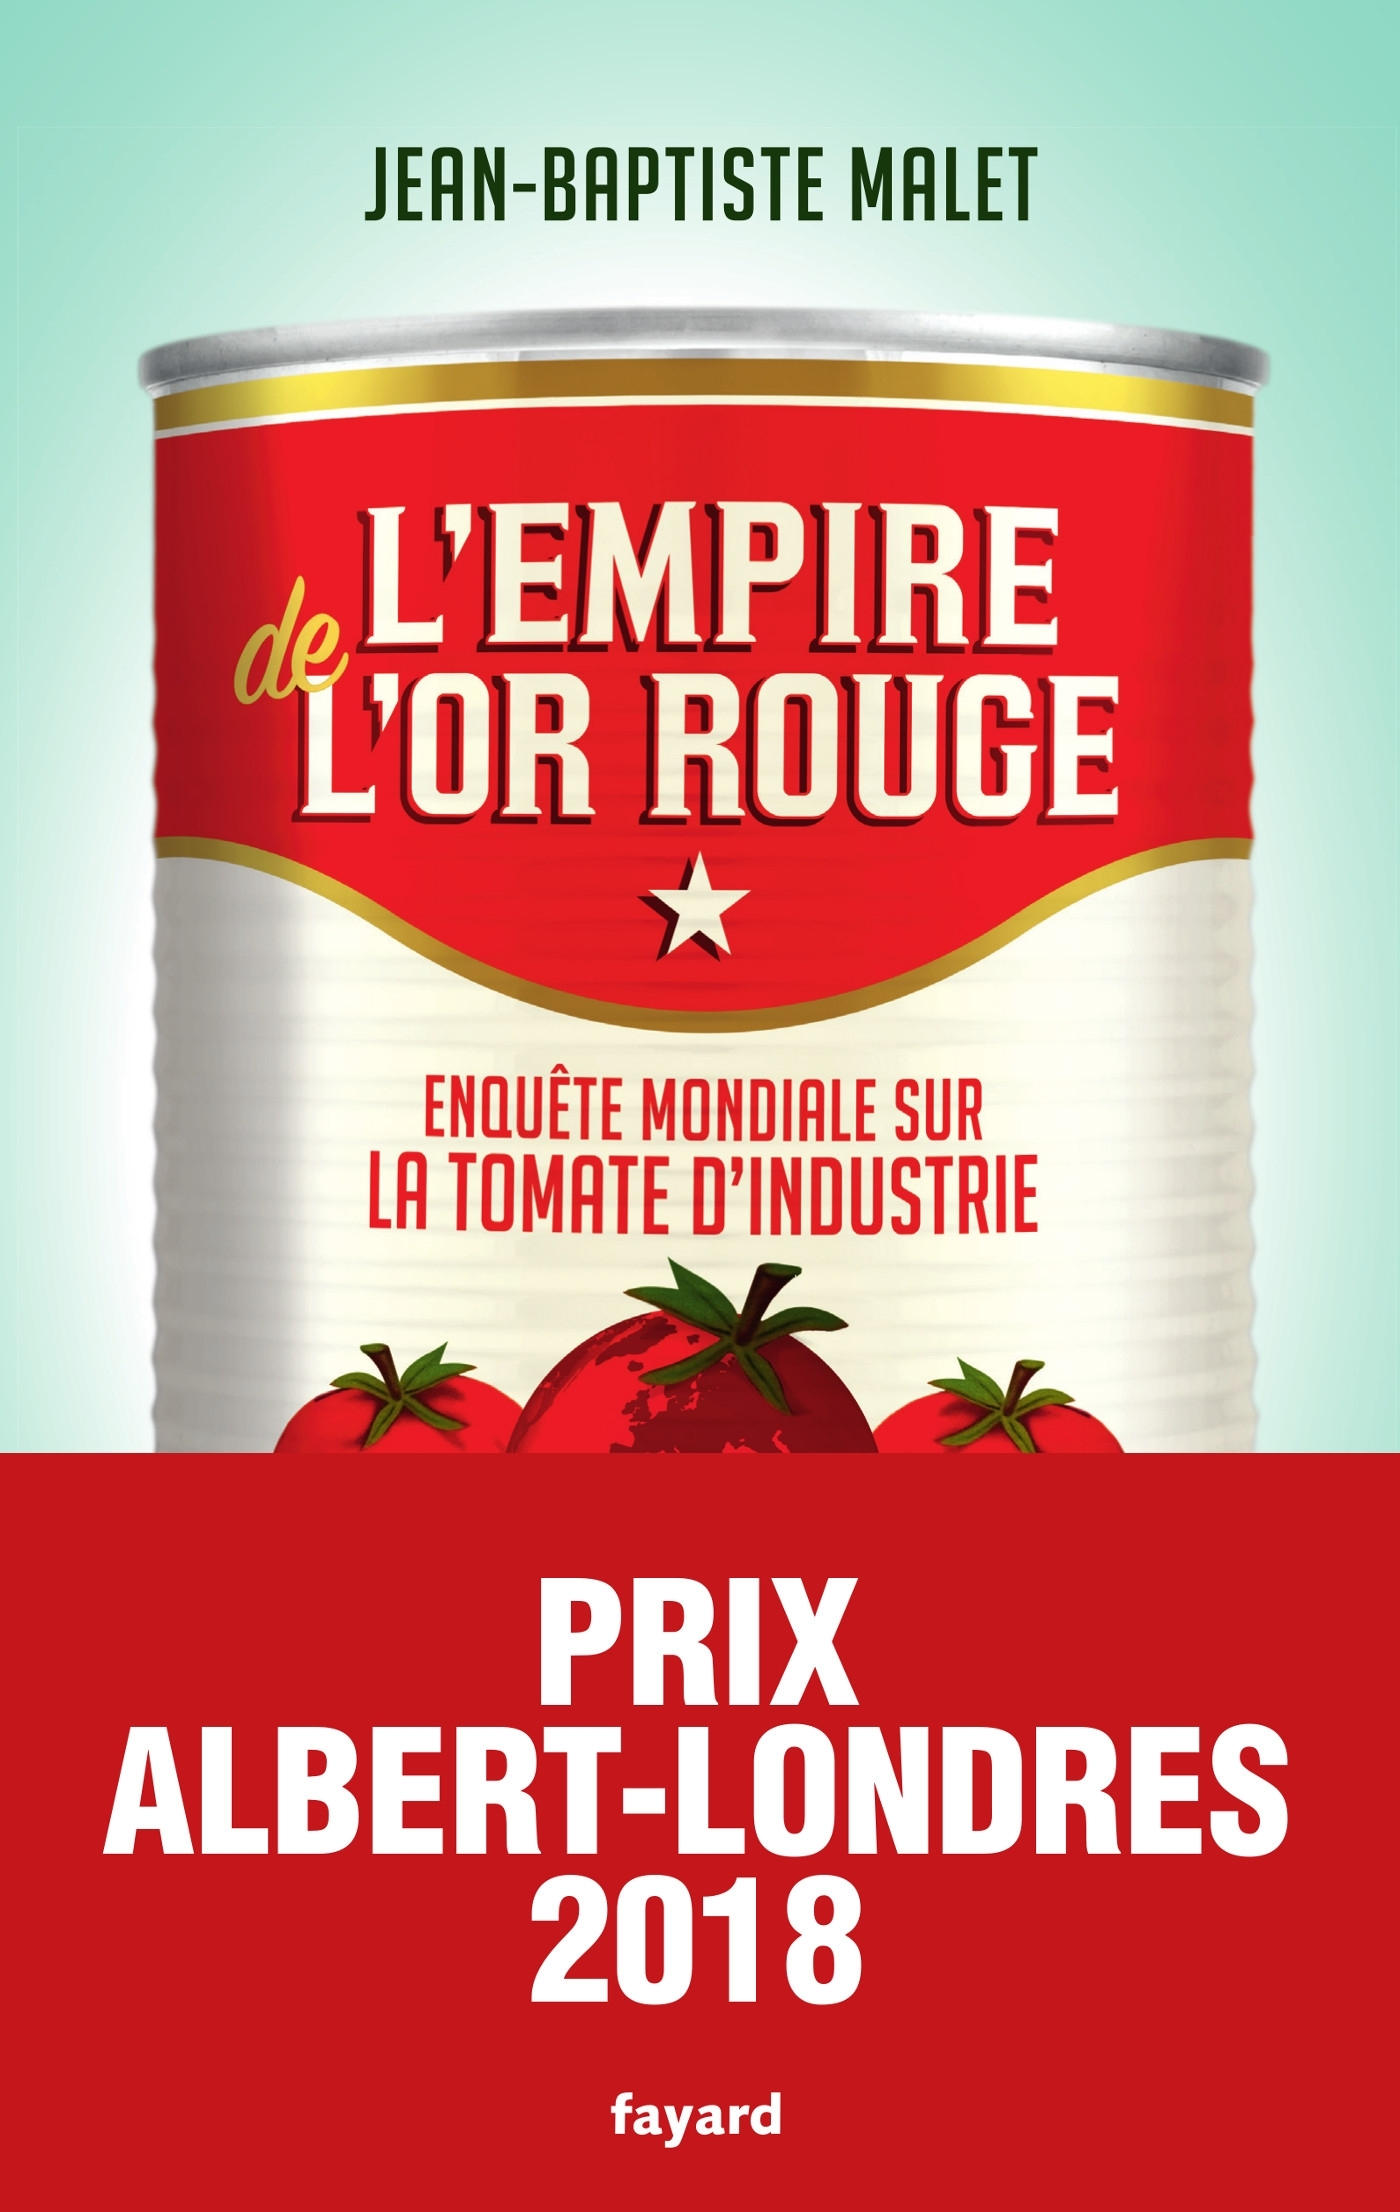 L'EMPIRE DE L'OR ROUGE